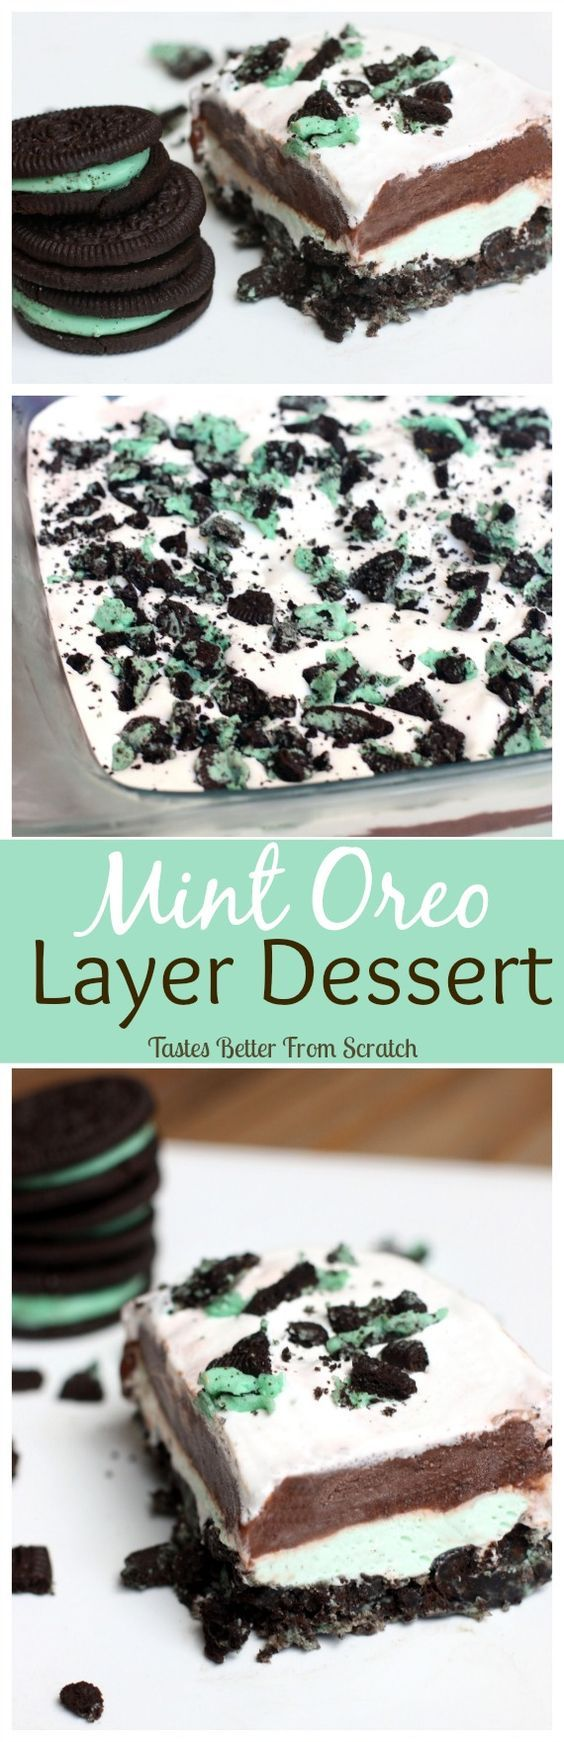 Mint Oreo Layer Dessert on MyRecipeMagic.com  - An Easy No-bake dessert that everyone will LOVE!: